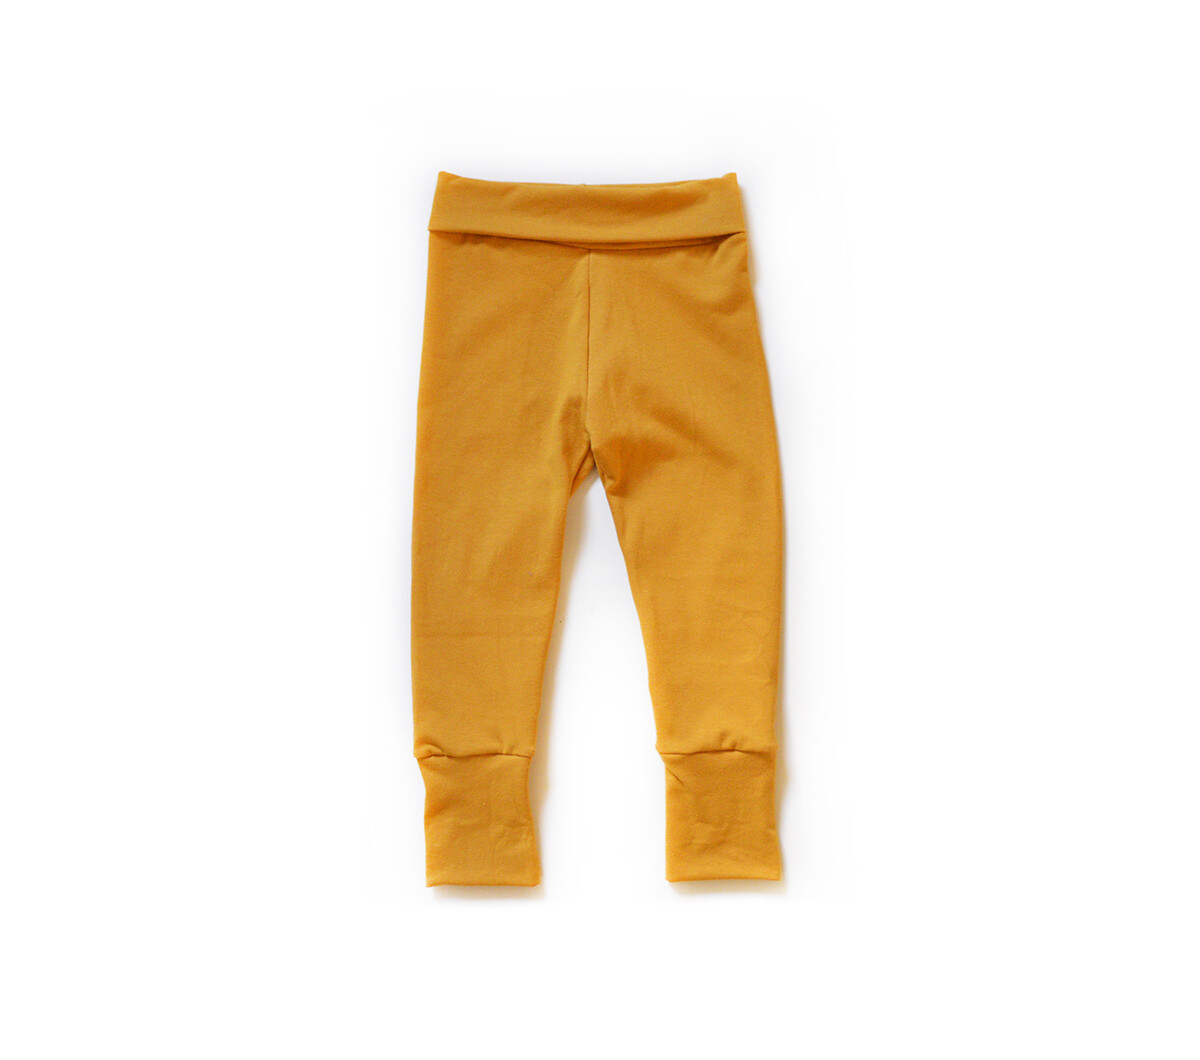 Little Sprout Pants™ in Harvest Gold | Grow With Me Leggings